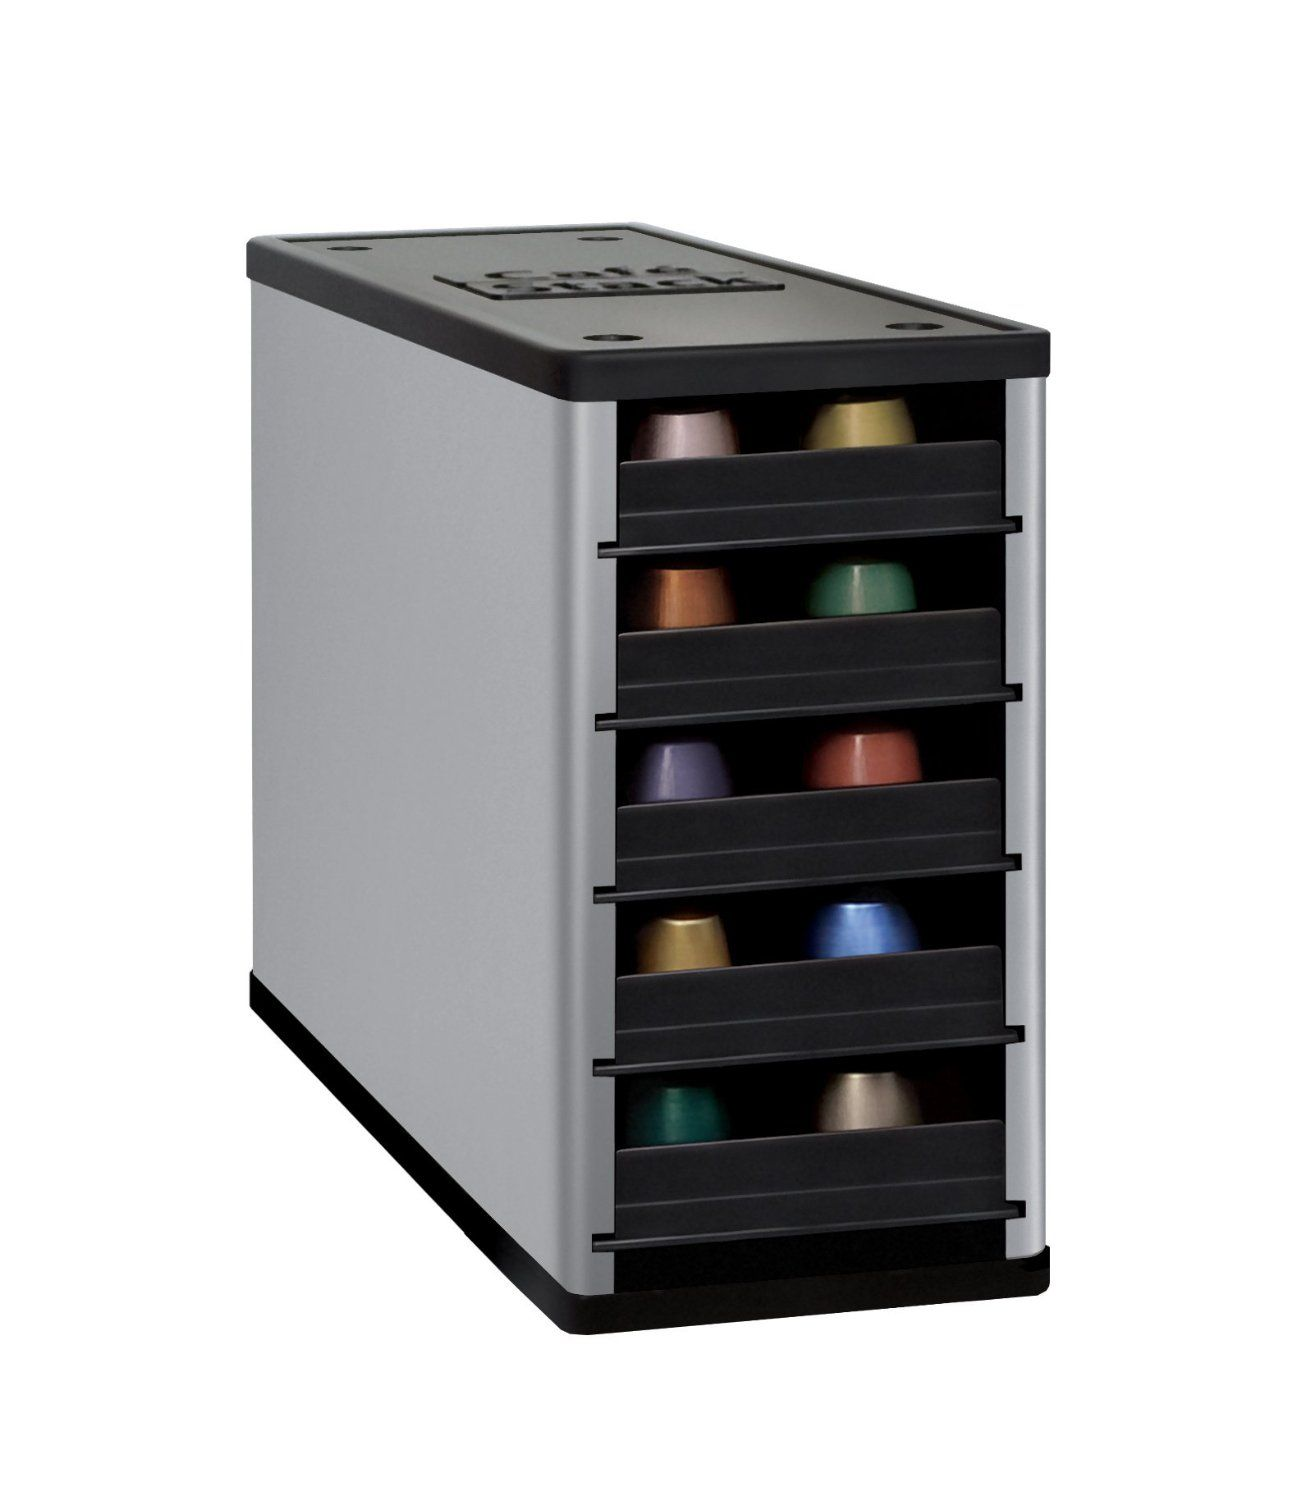 CaféStack® is the only capsule organizer designed for your